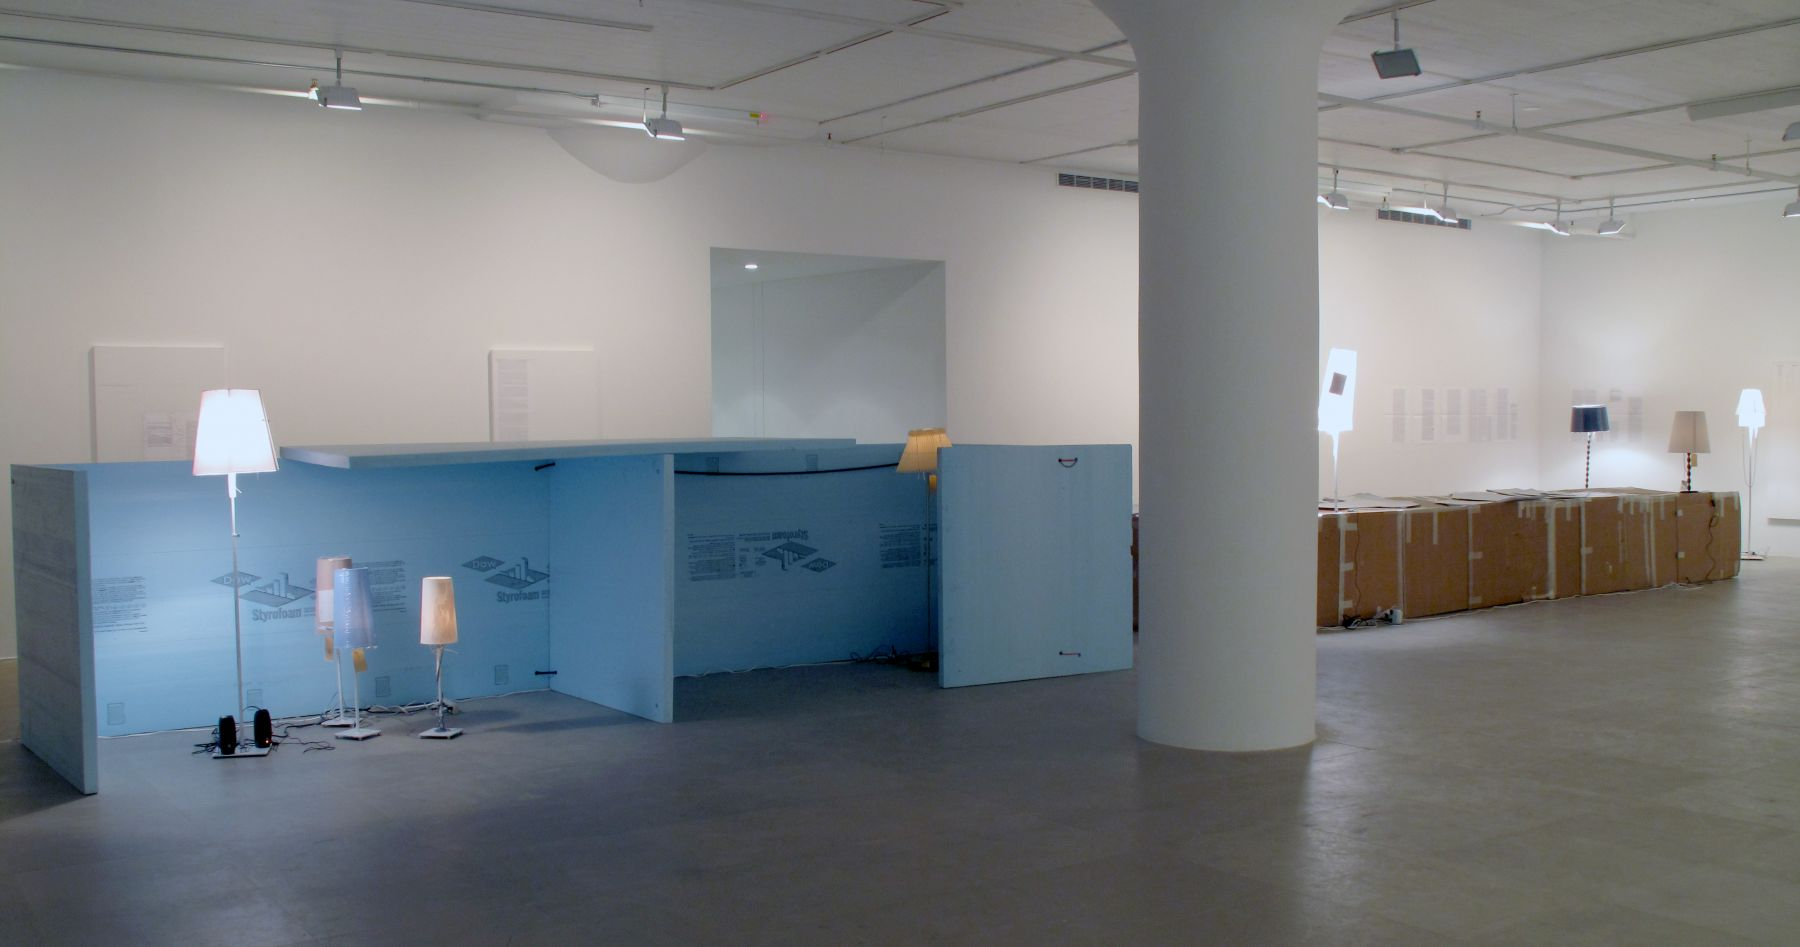 Installation view, 18INIQITIES, Greene Naftali, New York, 2008